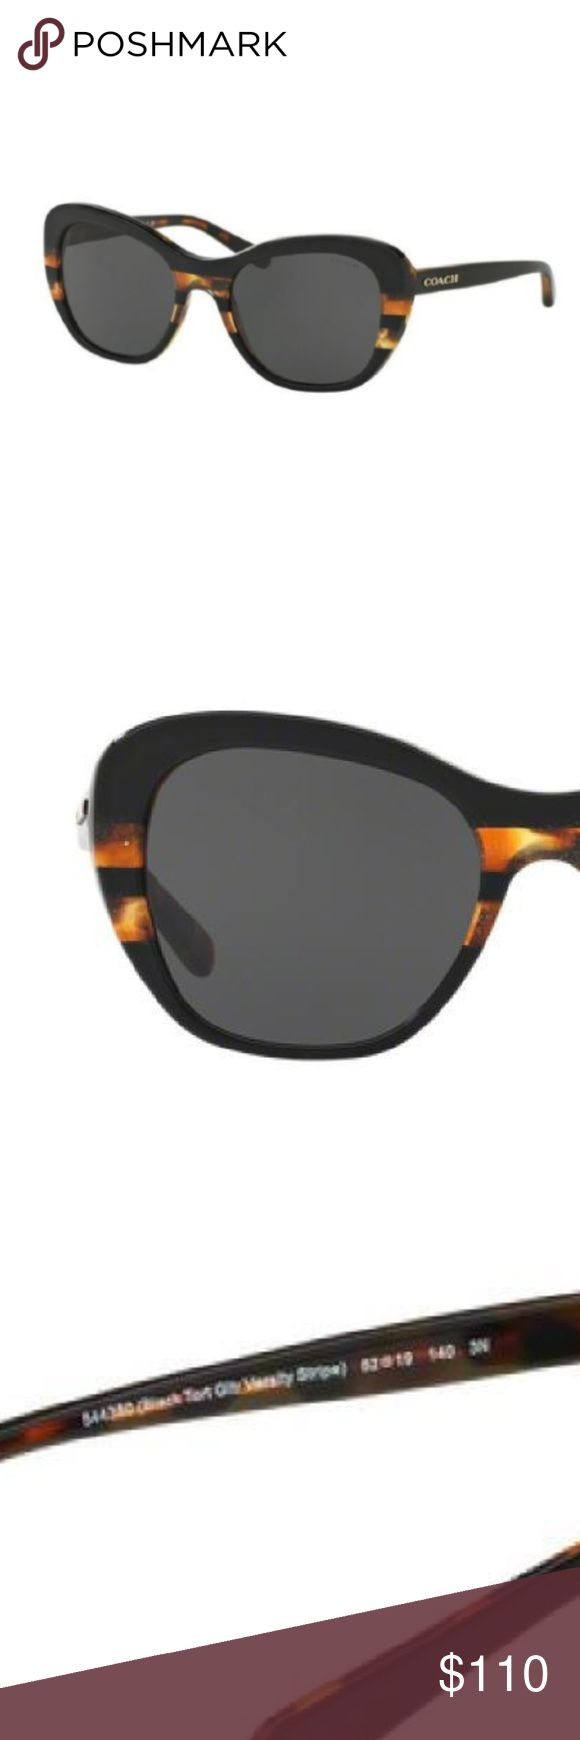 Coach 0HC8204 Tortoise Varsity Stripe Sunglasses Women Coach Tortoise Sunglasses   The Coach Varsity Stripe is in this exclusive custom acetate, an innovative take on tortoise with a dusting of glitter. Bold and retro-inspired, the pair feature scratch-resistant lenses expertly cut to minimize visual distortion, and come packaged in a protective signature case. 100% UV protection. Gradient lenses. Packaged in a protective Coach case with microfiber cleaning cloth. Measurements: Eye Size: 51…